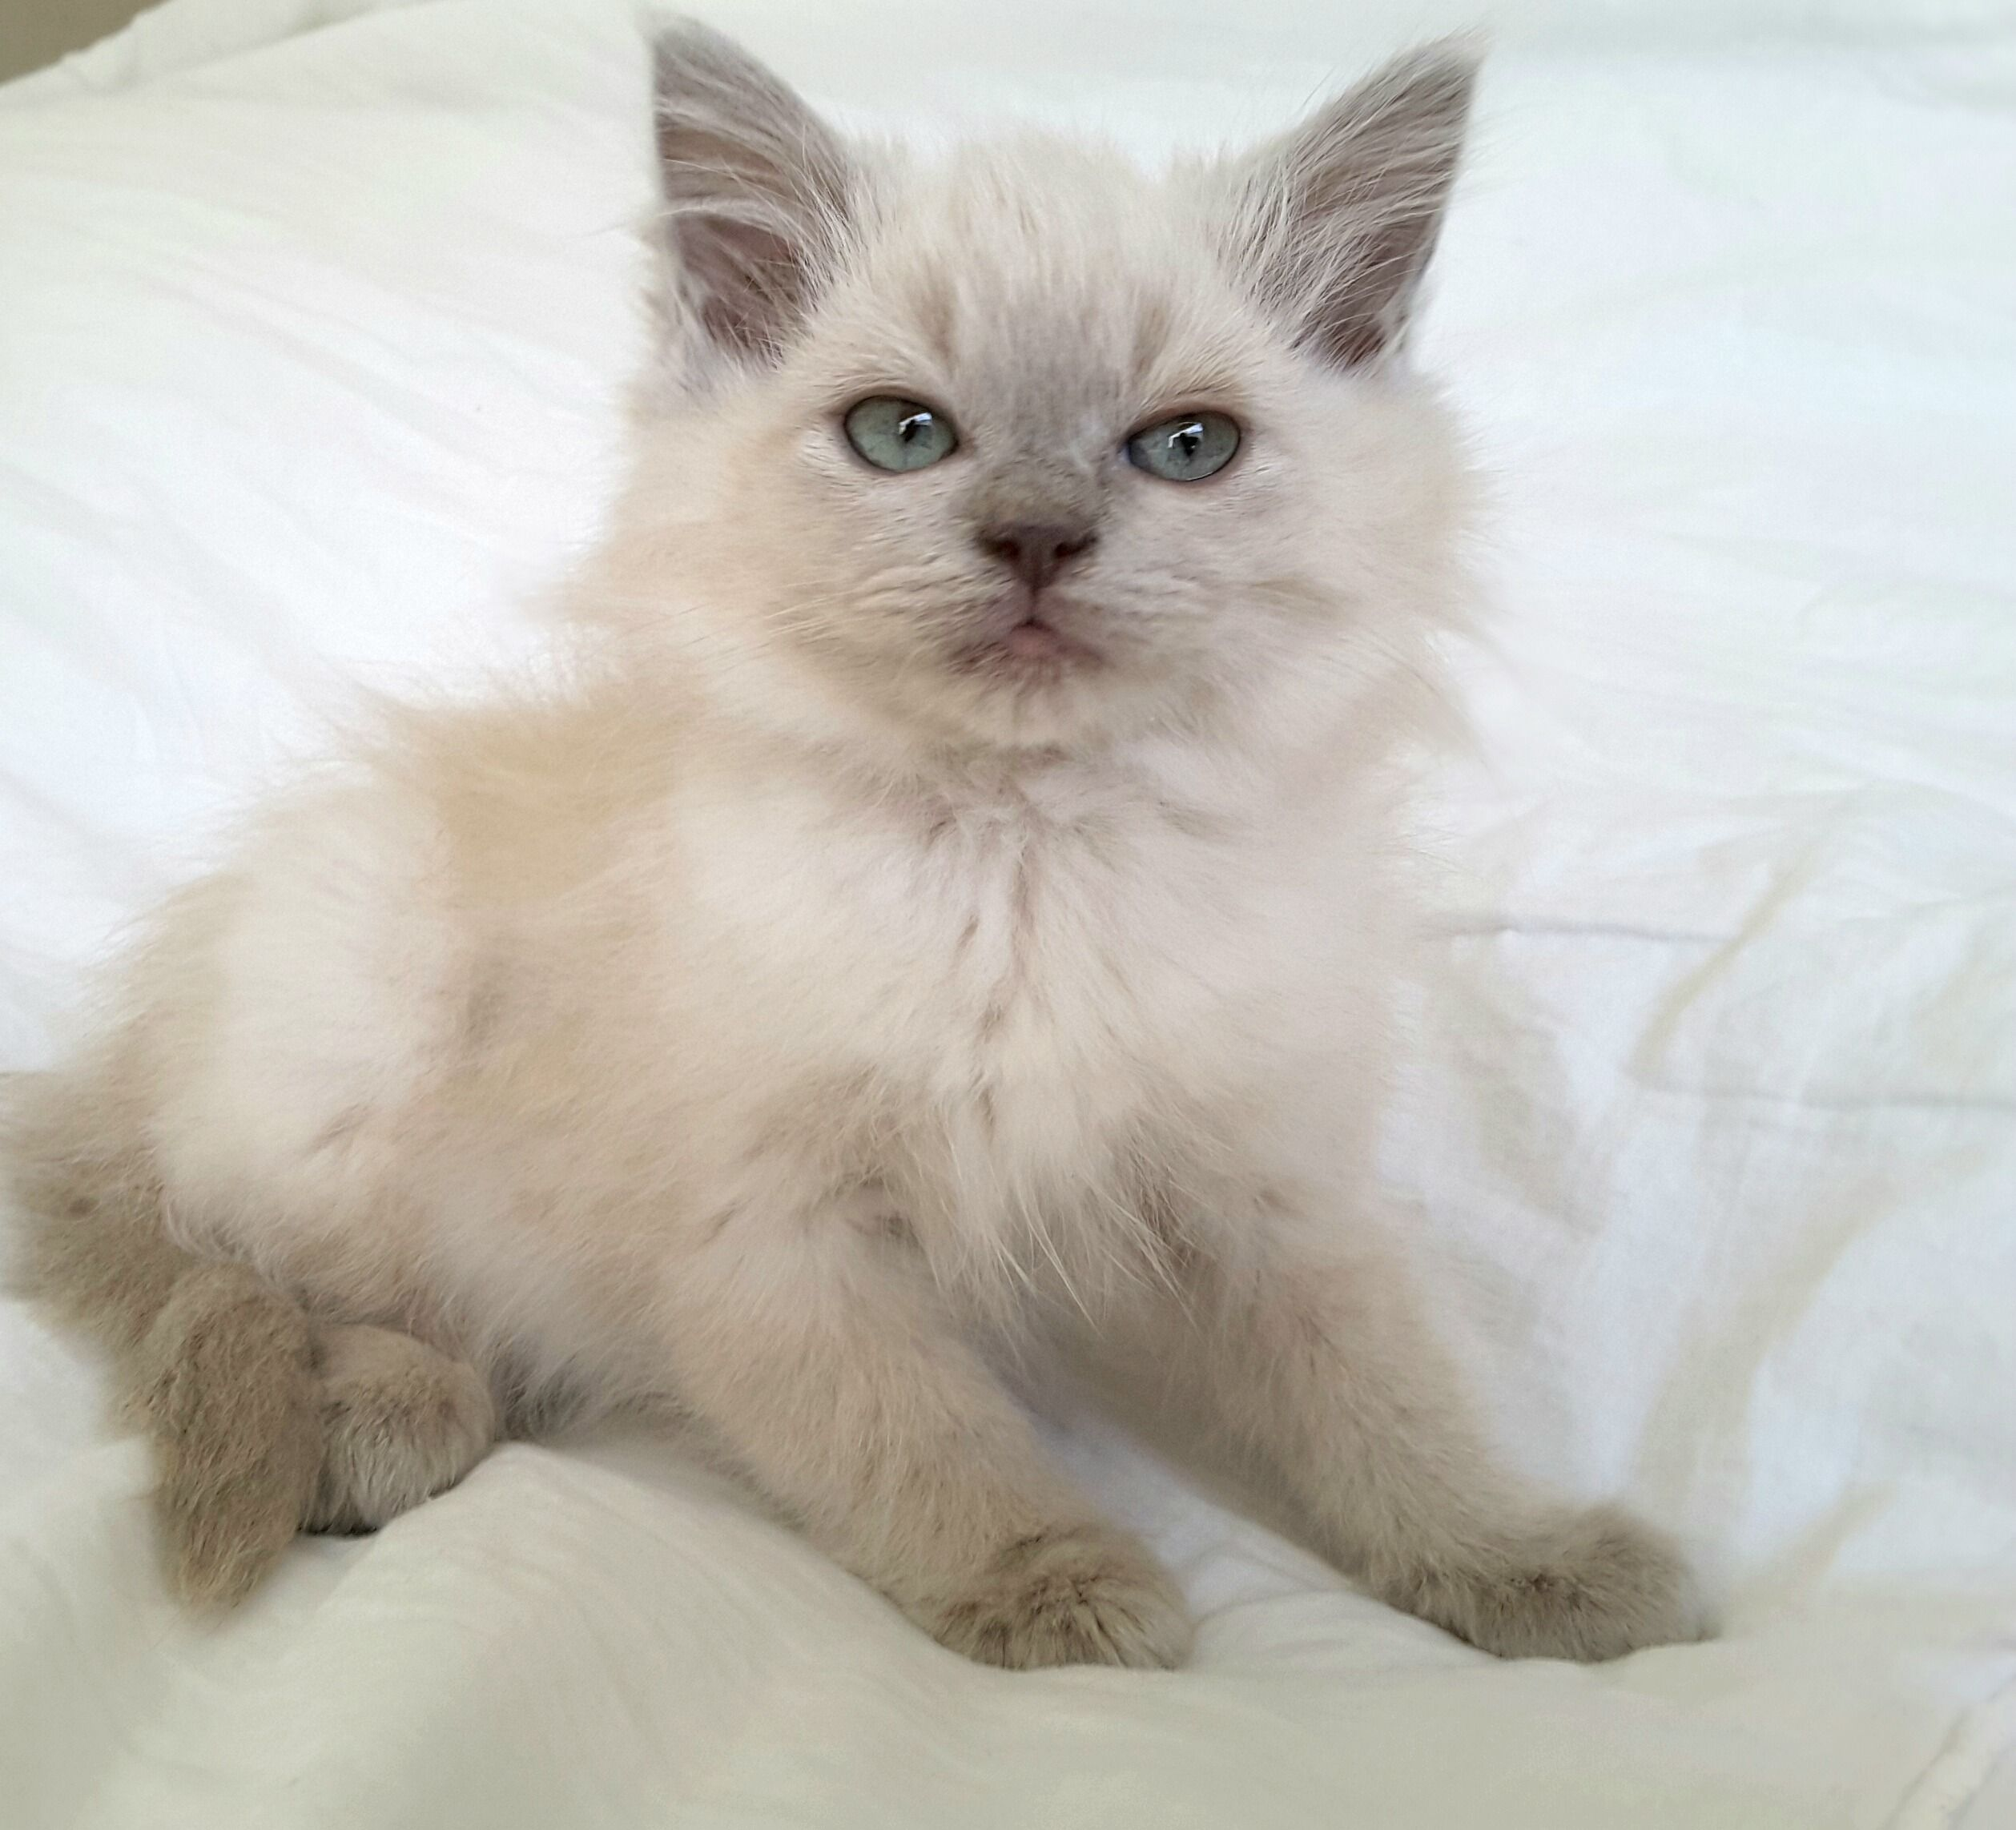 Available Ragdoll Kittens For Sale Mink And Sepia Ragdolls Ragdoll Kittens For Sale Kitten For Sale Ragamuffin Cat